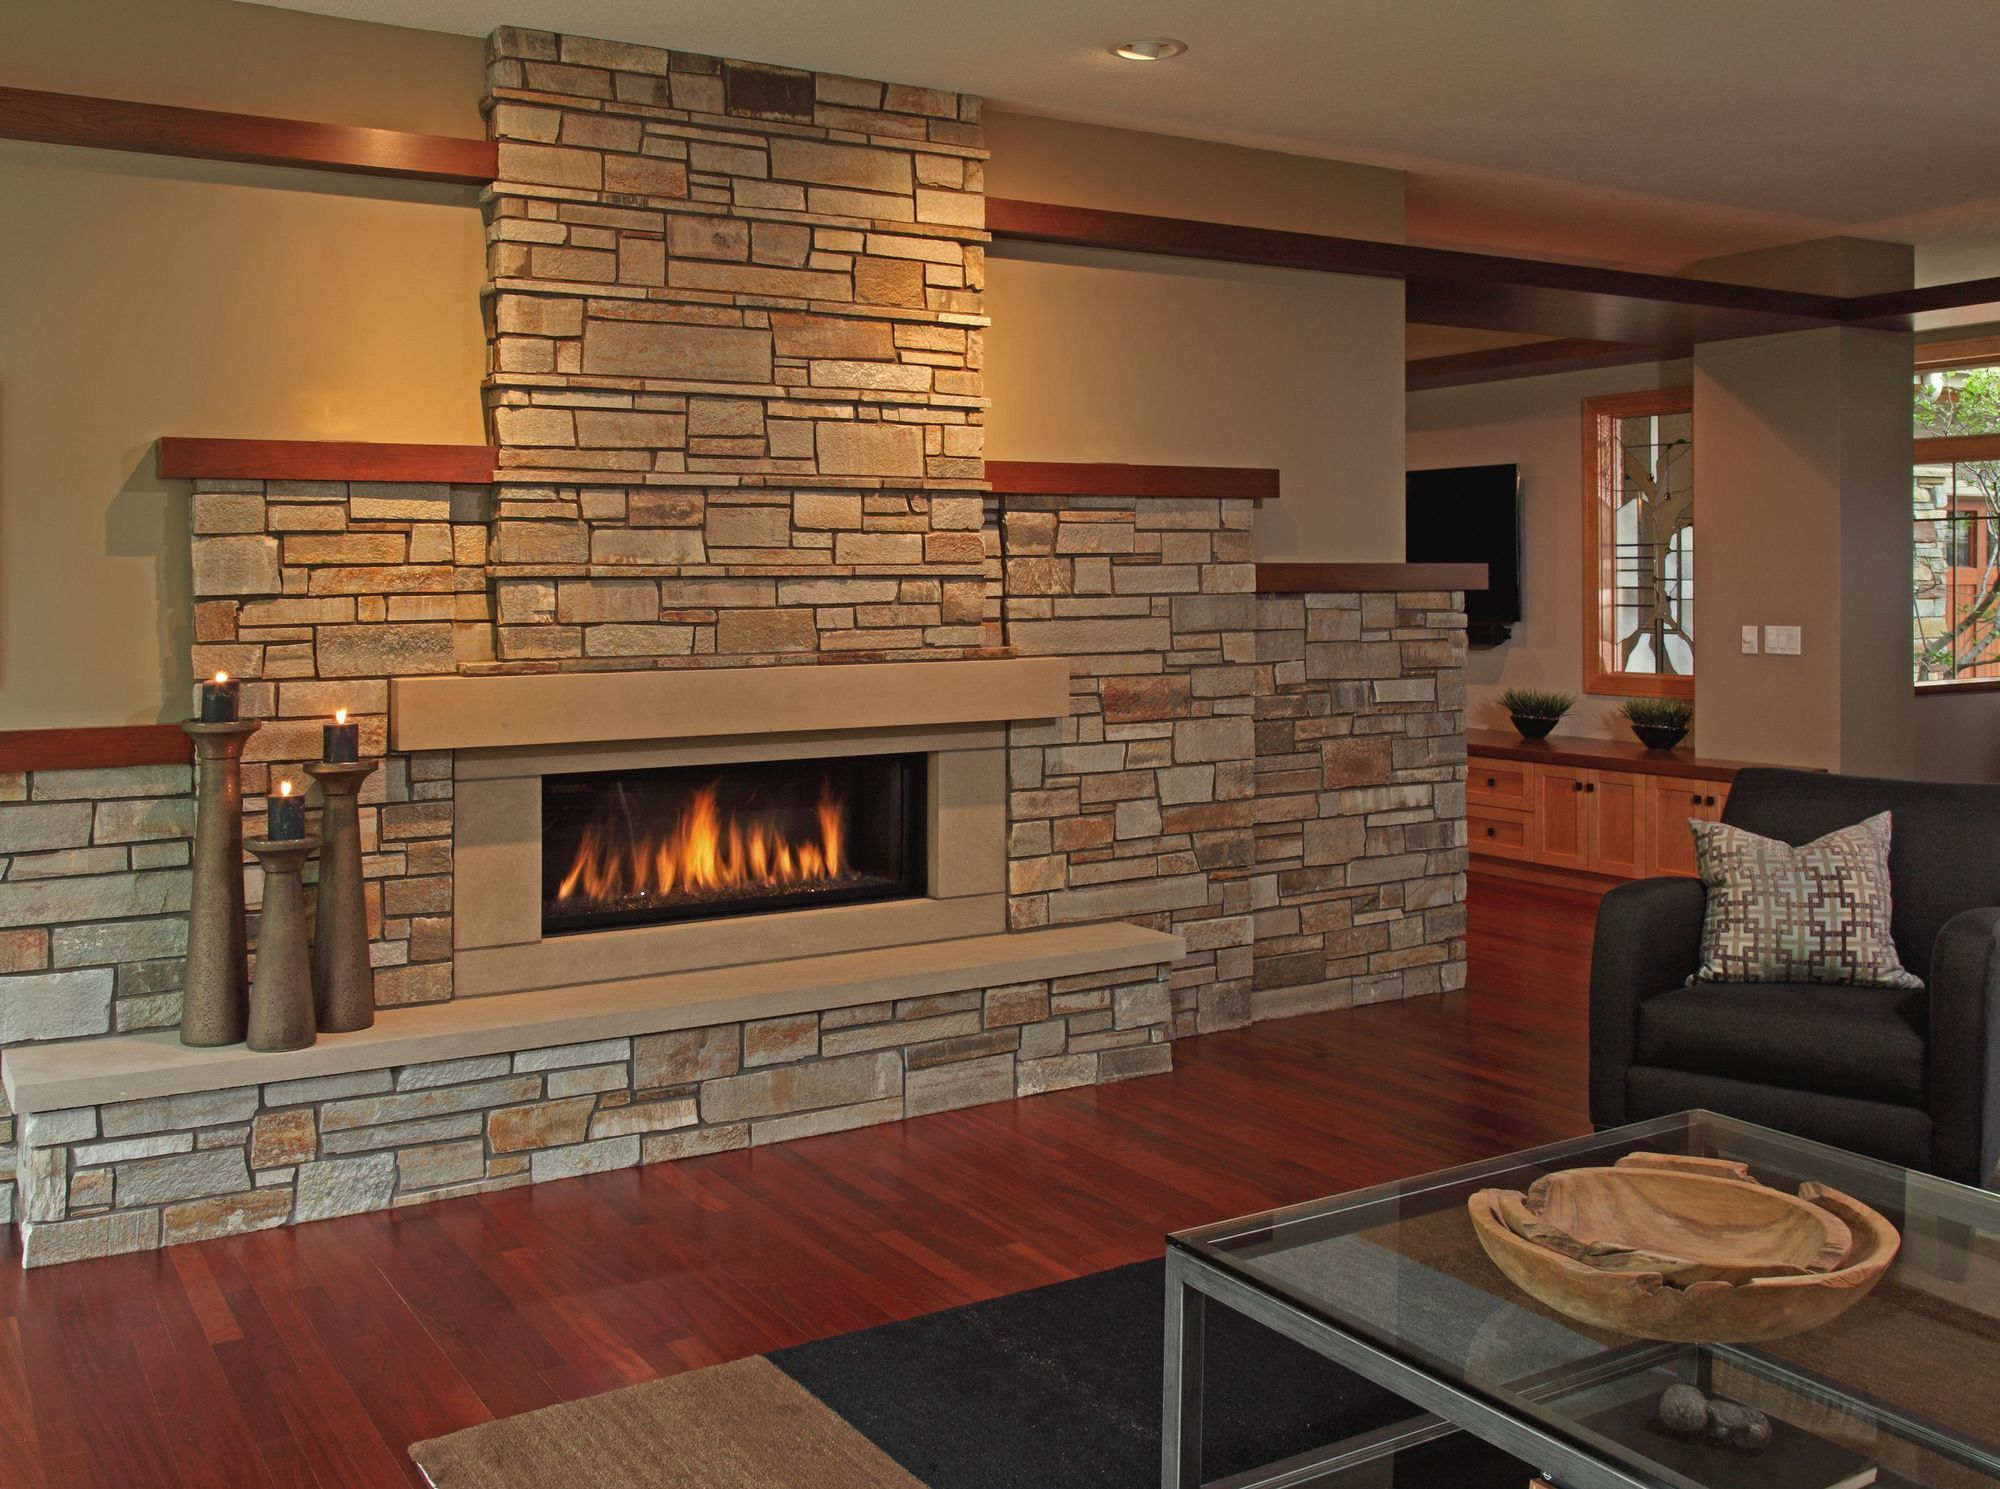 pin by sukran dikim evi on aha ap ev pinterest stone fireplaces